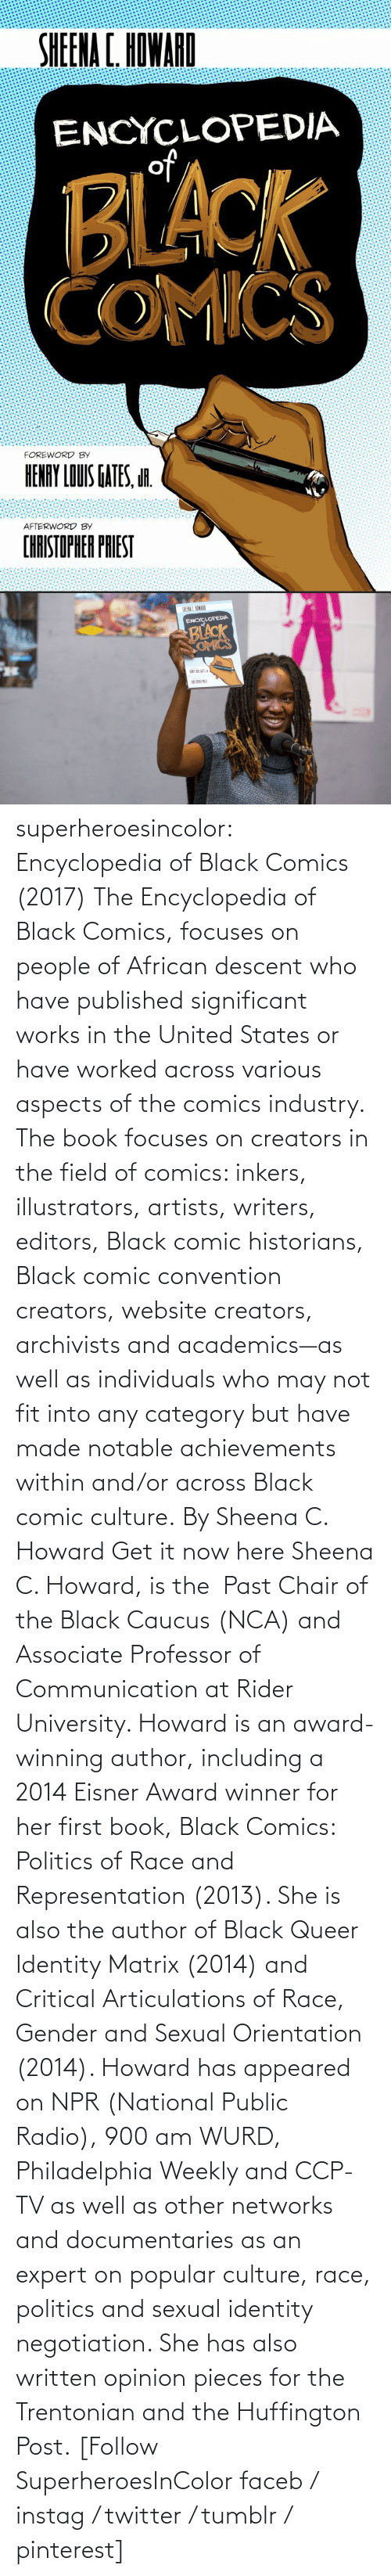 get: superheroesincolor: Encyclopedia of Black Comics (2017) The Encyclopedia of Black Comics, focuses on people of African descent who have published significant works in the United States or have worked across various aspects of the comics industry.  The book focuses on creators in the field of comics: inkers, illustrators, artists, writers, editors, Black comic historians, Black comic convention creators, website creators, archivists and academics—as well as individuals who may not fit into any category but have made notable achievements within and/or across Black comic culture. By Sheena C. Howard Get it now here  Sheena C. Howard, is the  Past Chair of the Black Caucus (NCA) and Associate Professor of Communication at Rider University. Howard is an award-winning author, including a 2014 Eisner Award winner for her first book, Black Comics: Politics of Race and Representation (2013). She is also the author of Black Queer Identity Matrix (2014) and Critical Articulations of Race, Gender and Sexual Orientation (2014). Howard has appeared on NPR (National Public Radio), 900 am WURD, Philadelphia Weekly and CCP-TV as well as other networks and documentaries as an expert on popular culture, race, politics and sexual identity negotiation. She has also written opinion pieces for the Trentonian and the Huffington Post.   [Follow SuperheroesInColor faceb / instag / twitter / tumblr / pinterest]